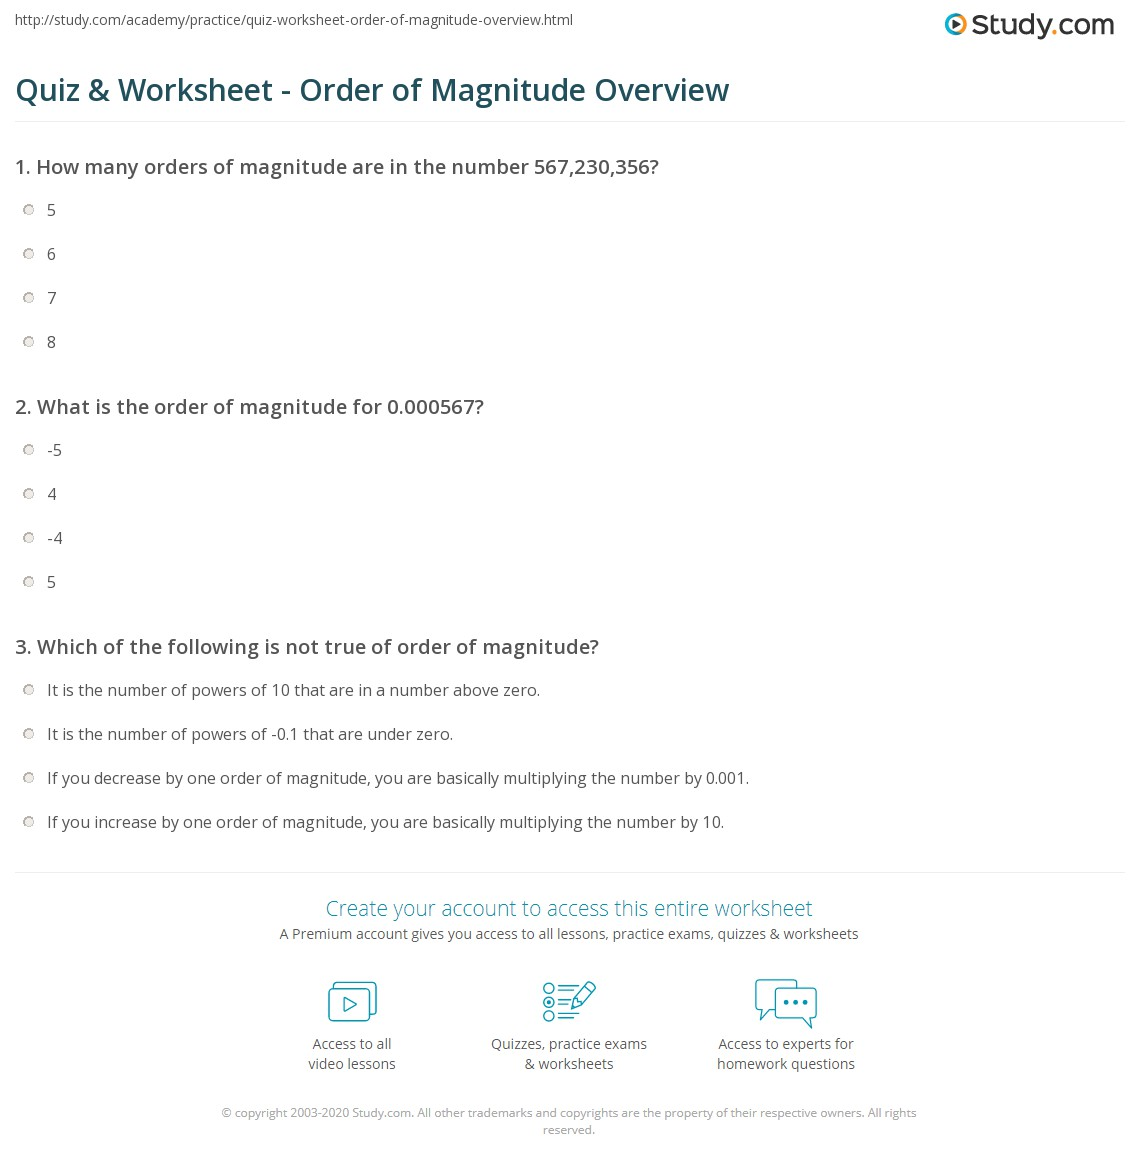 Uncategorized Maths Revision Ks3 Year 9 Worksheets ks3 maths worksheets negative numbers solving equations worksheet quiz order of magnitude overview study ks3